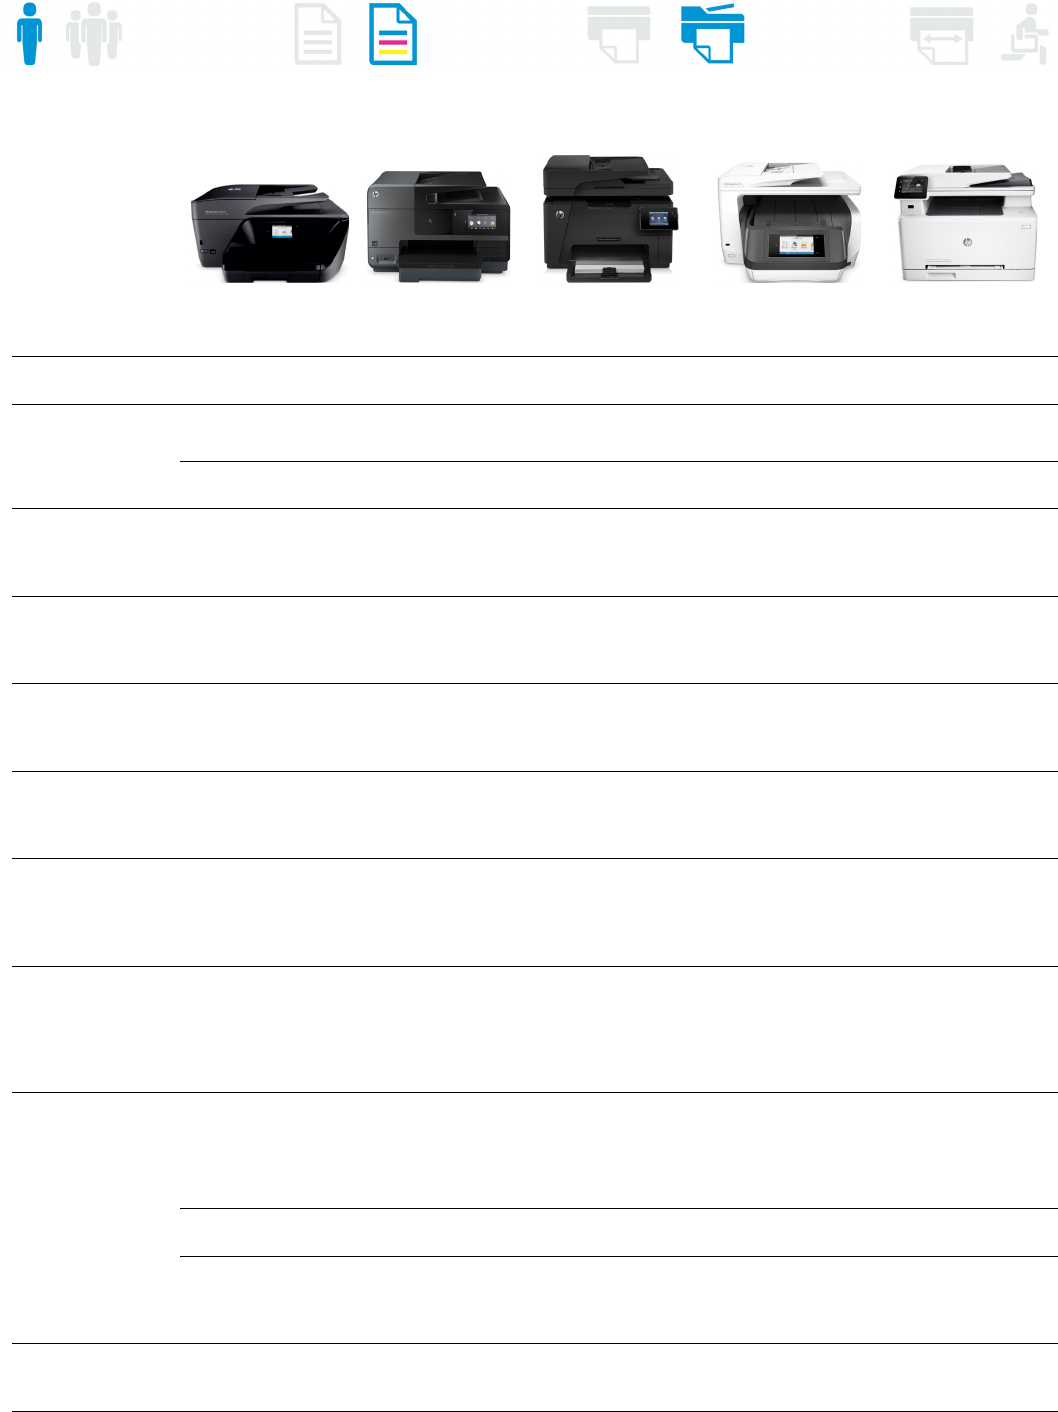 Selection guide HP printers, MFPs and all-in-ones